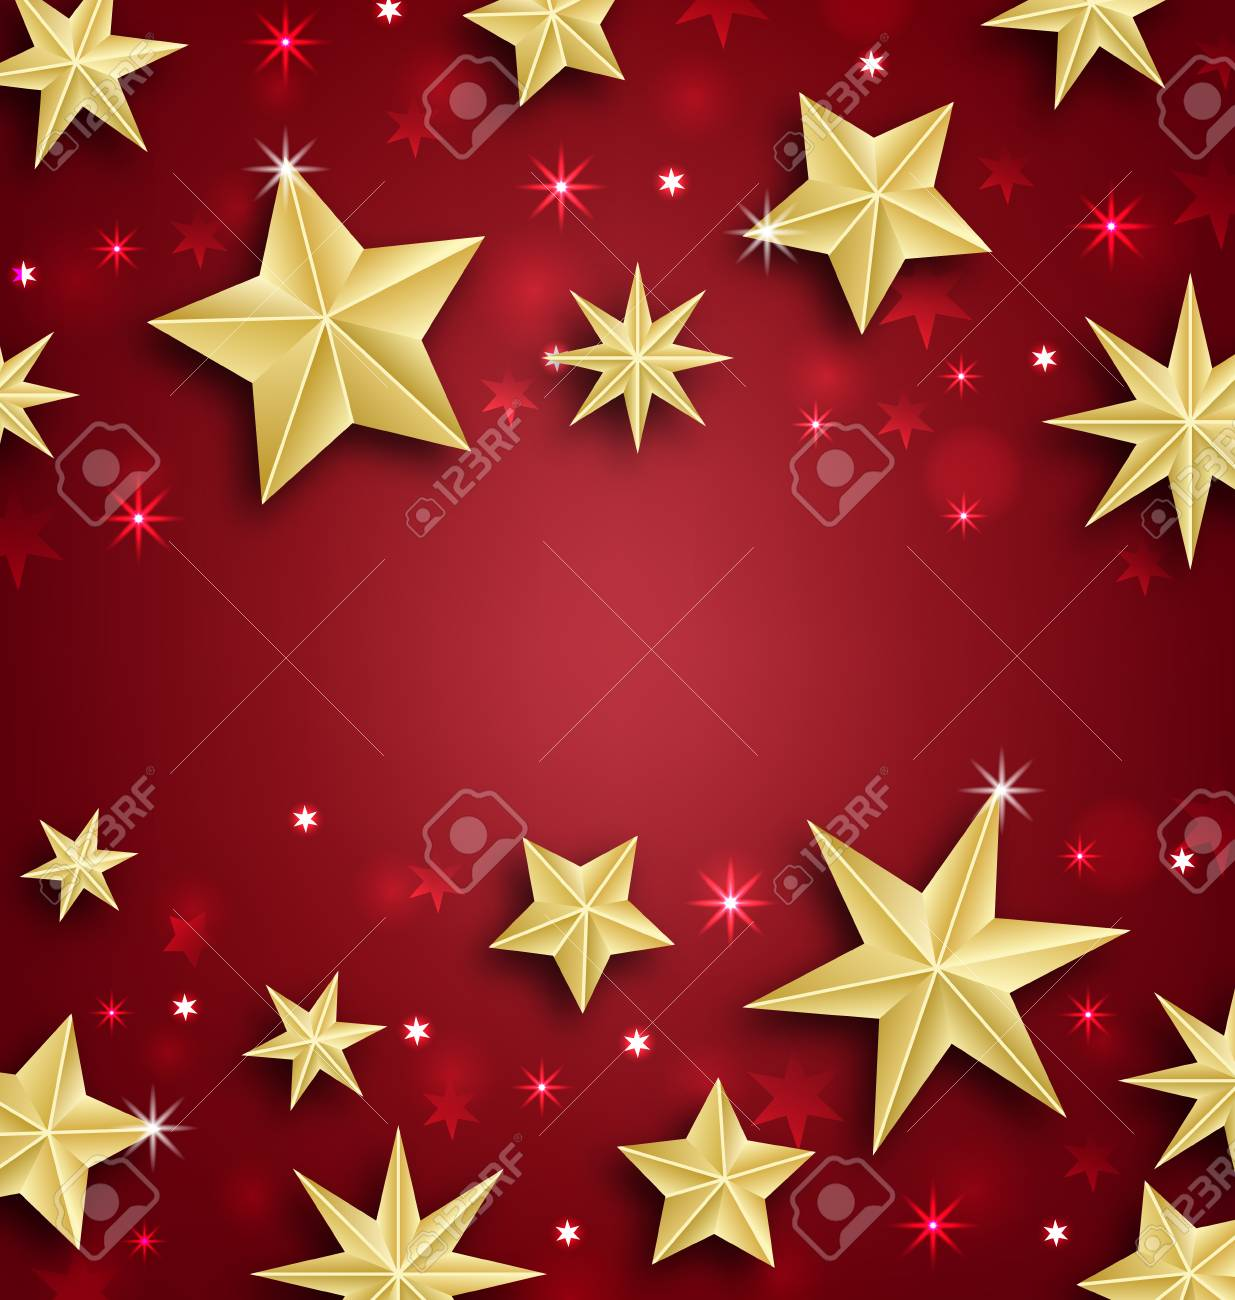 illustration illustration starry border for merry christmas and happy new year raster